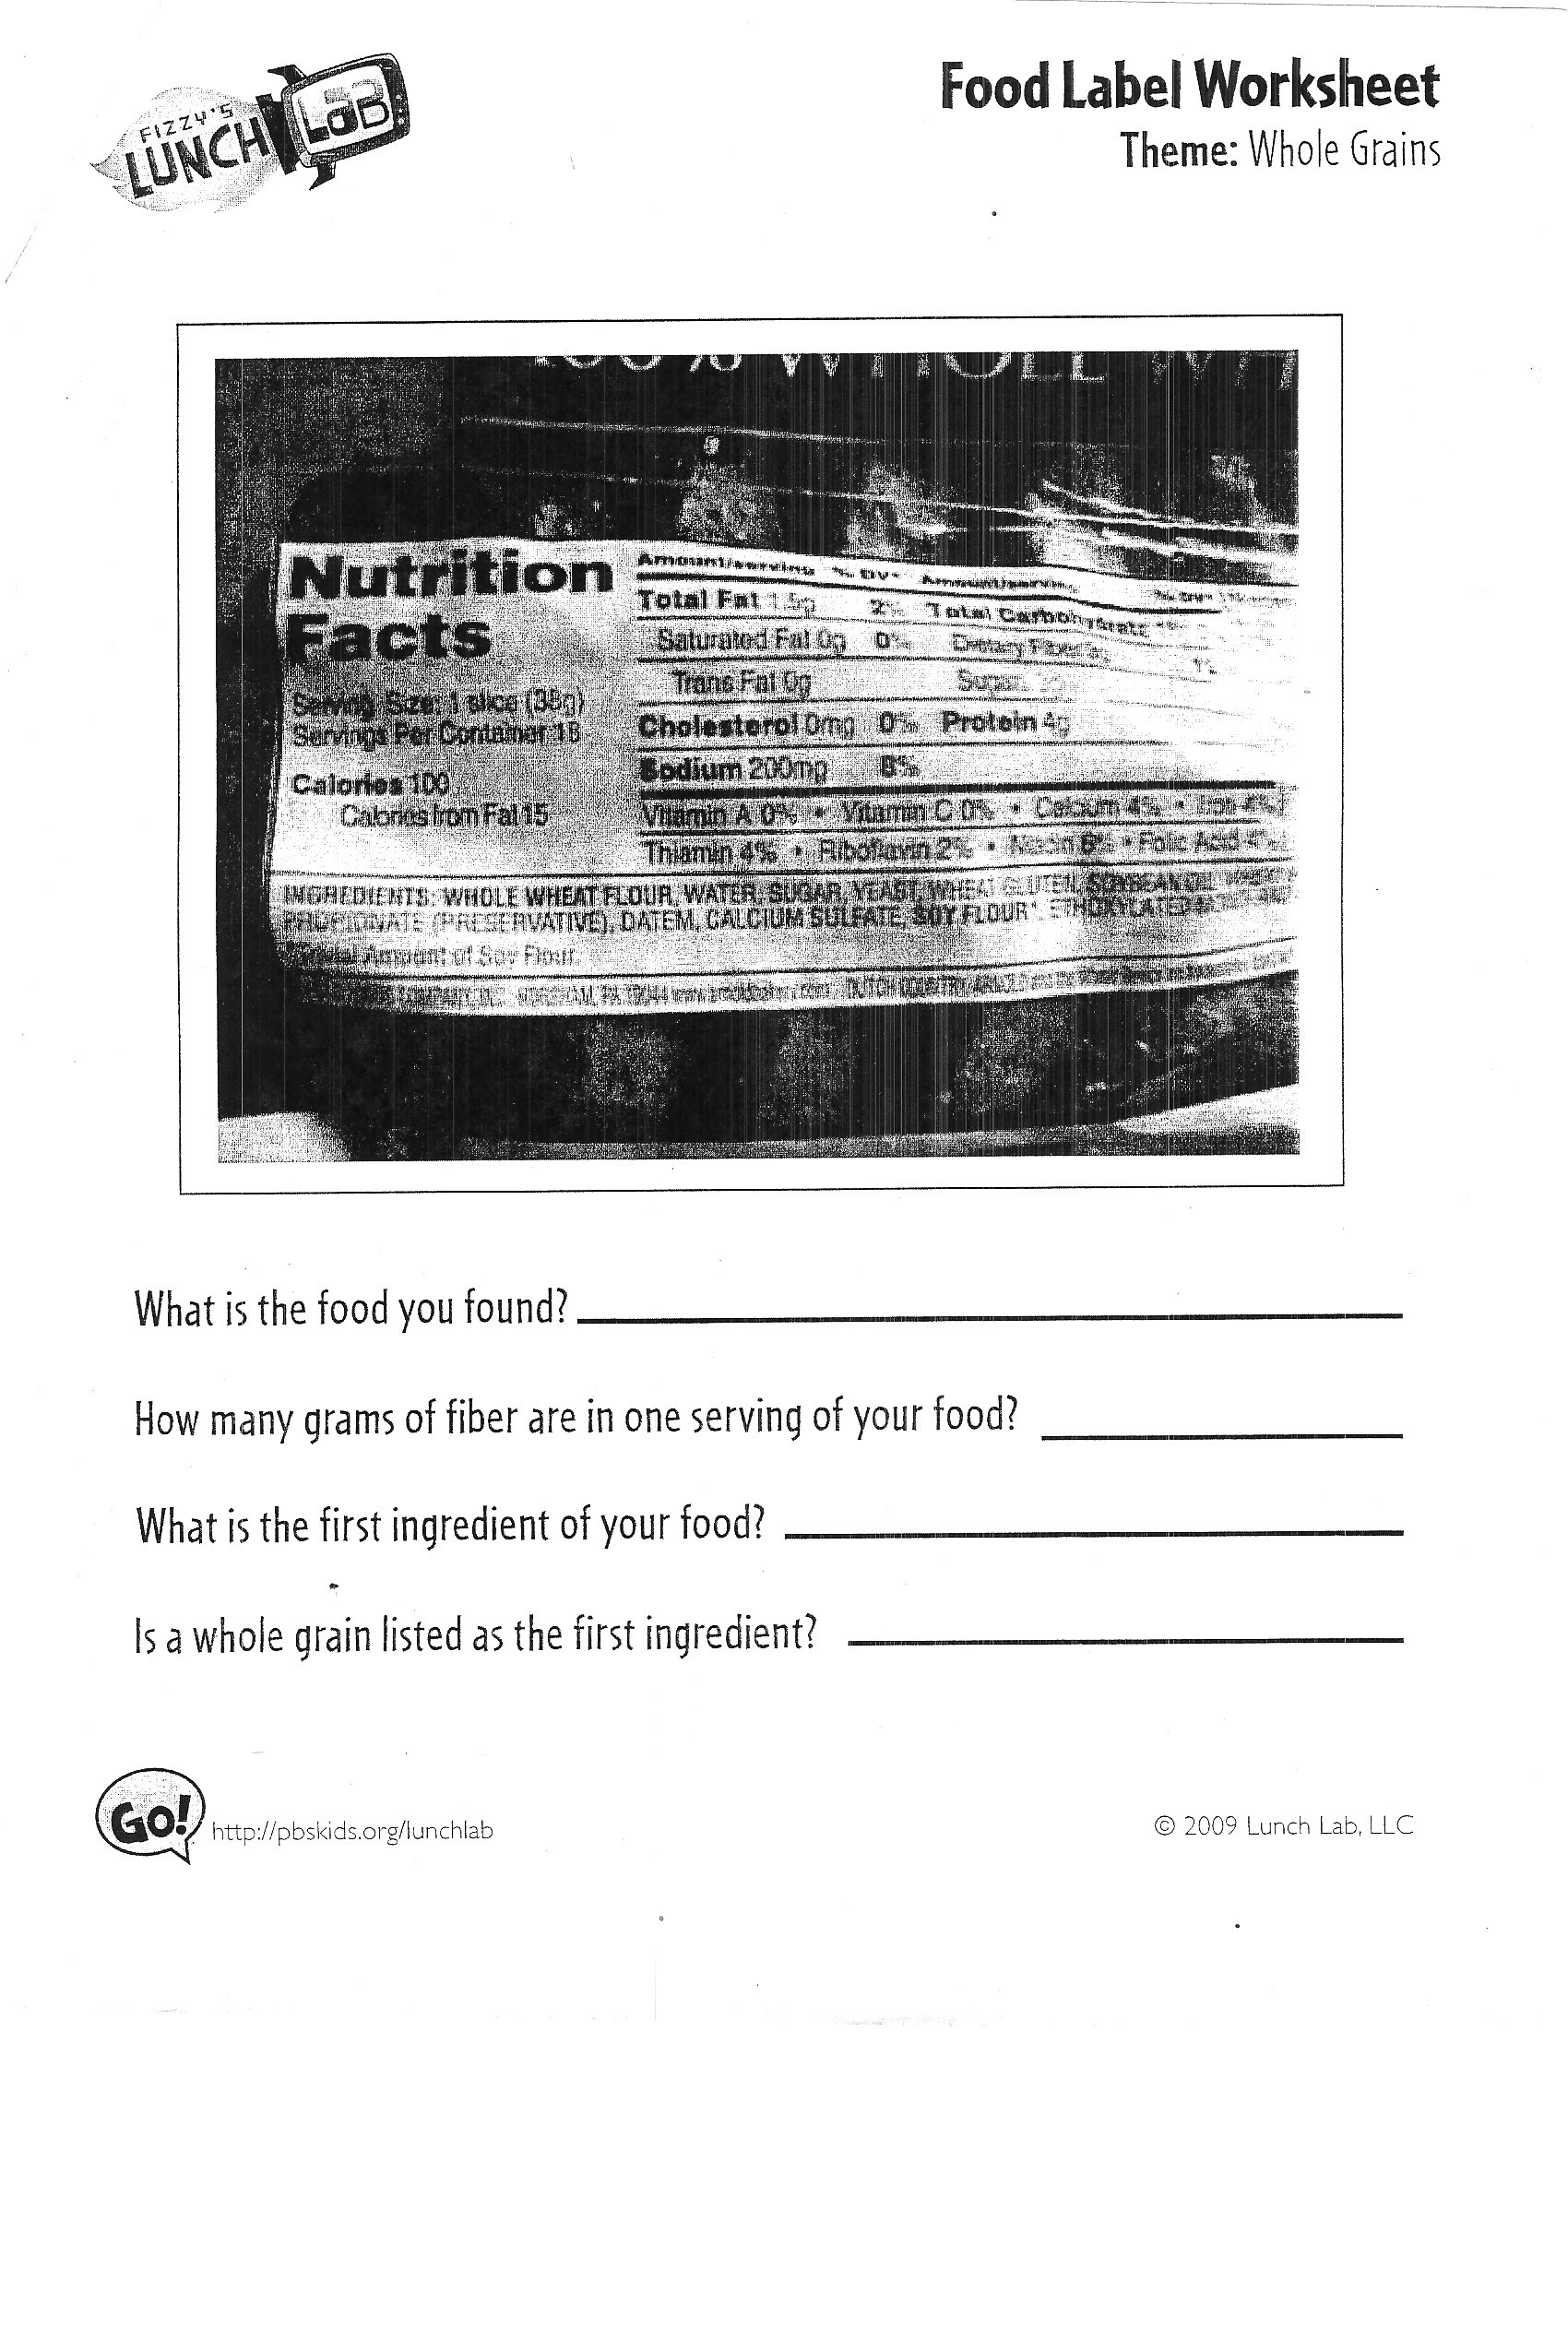 Worksheet Food Label Worksheet Worksheet Fun Worksheet Study Site